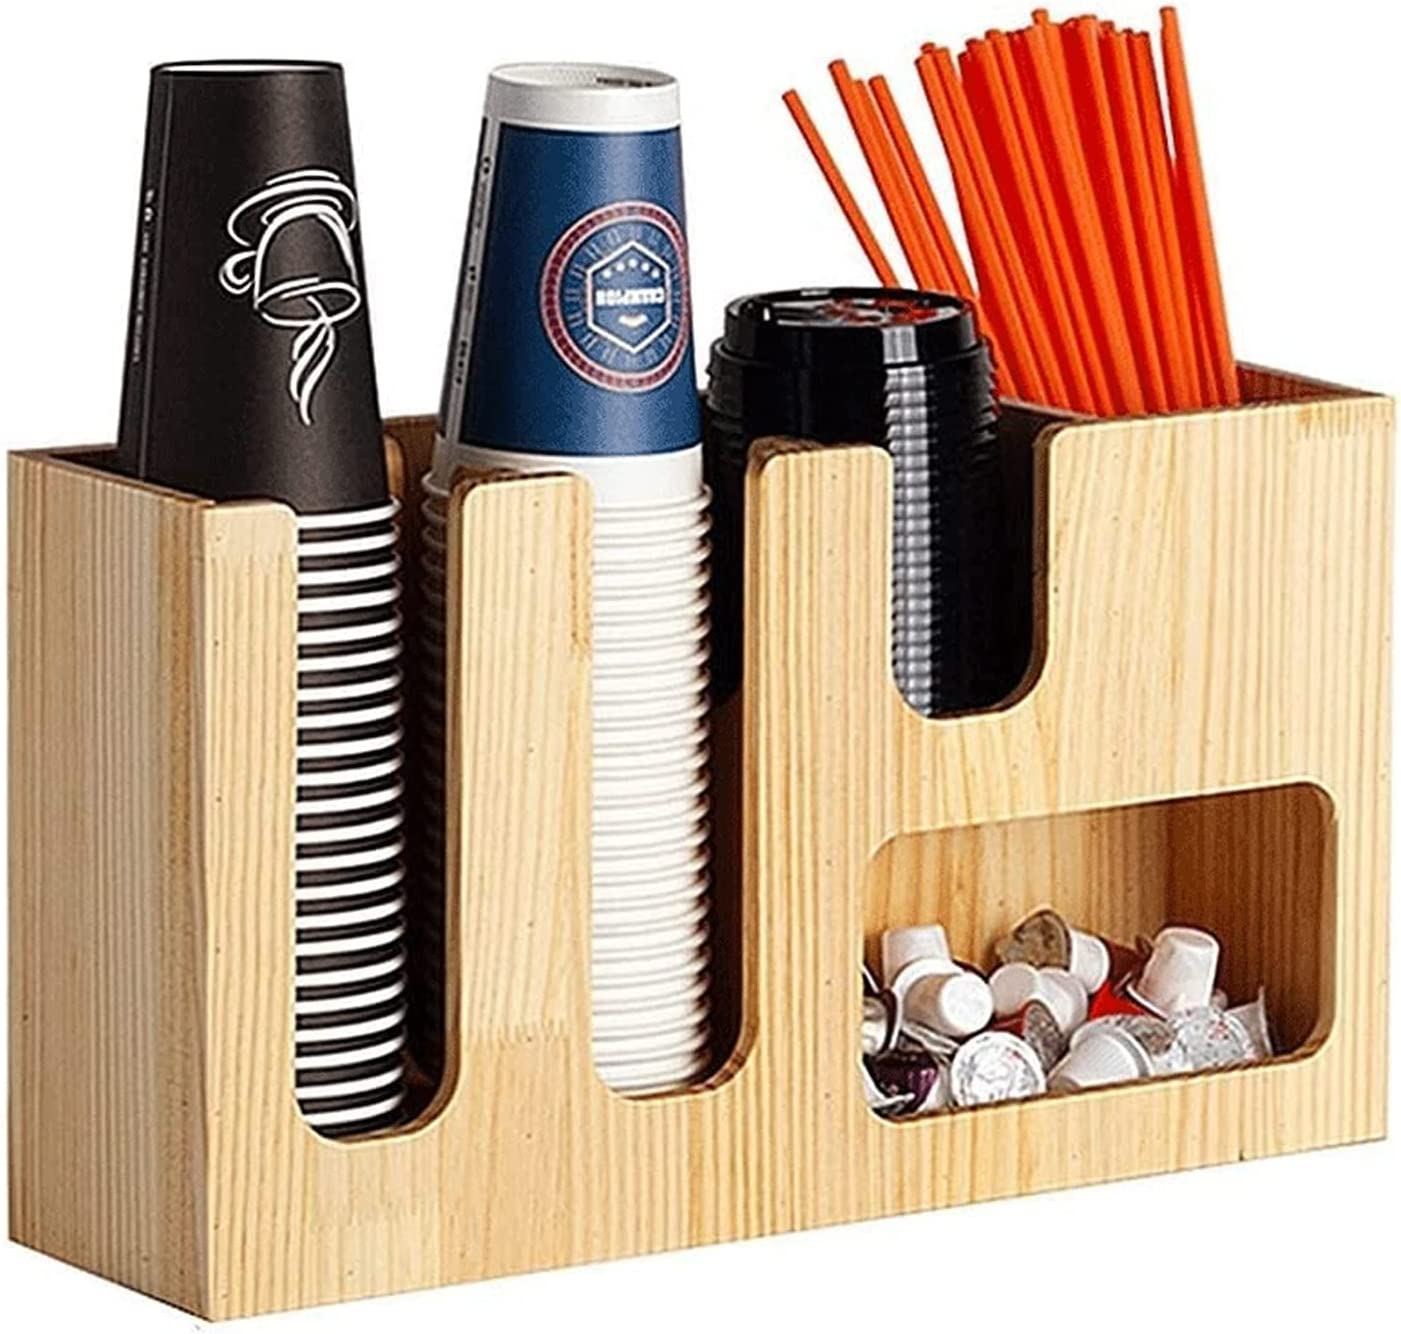 DJDLLZY Cup and Cheap SALE Start Lid Organizer Condiment Breakroom New products world's highest quality popular Coffee